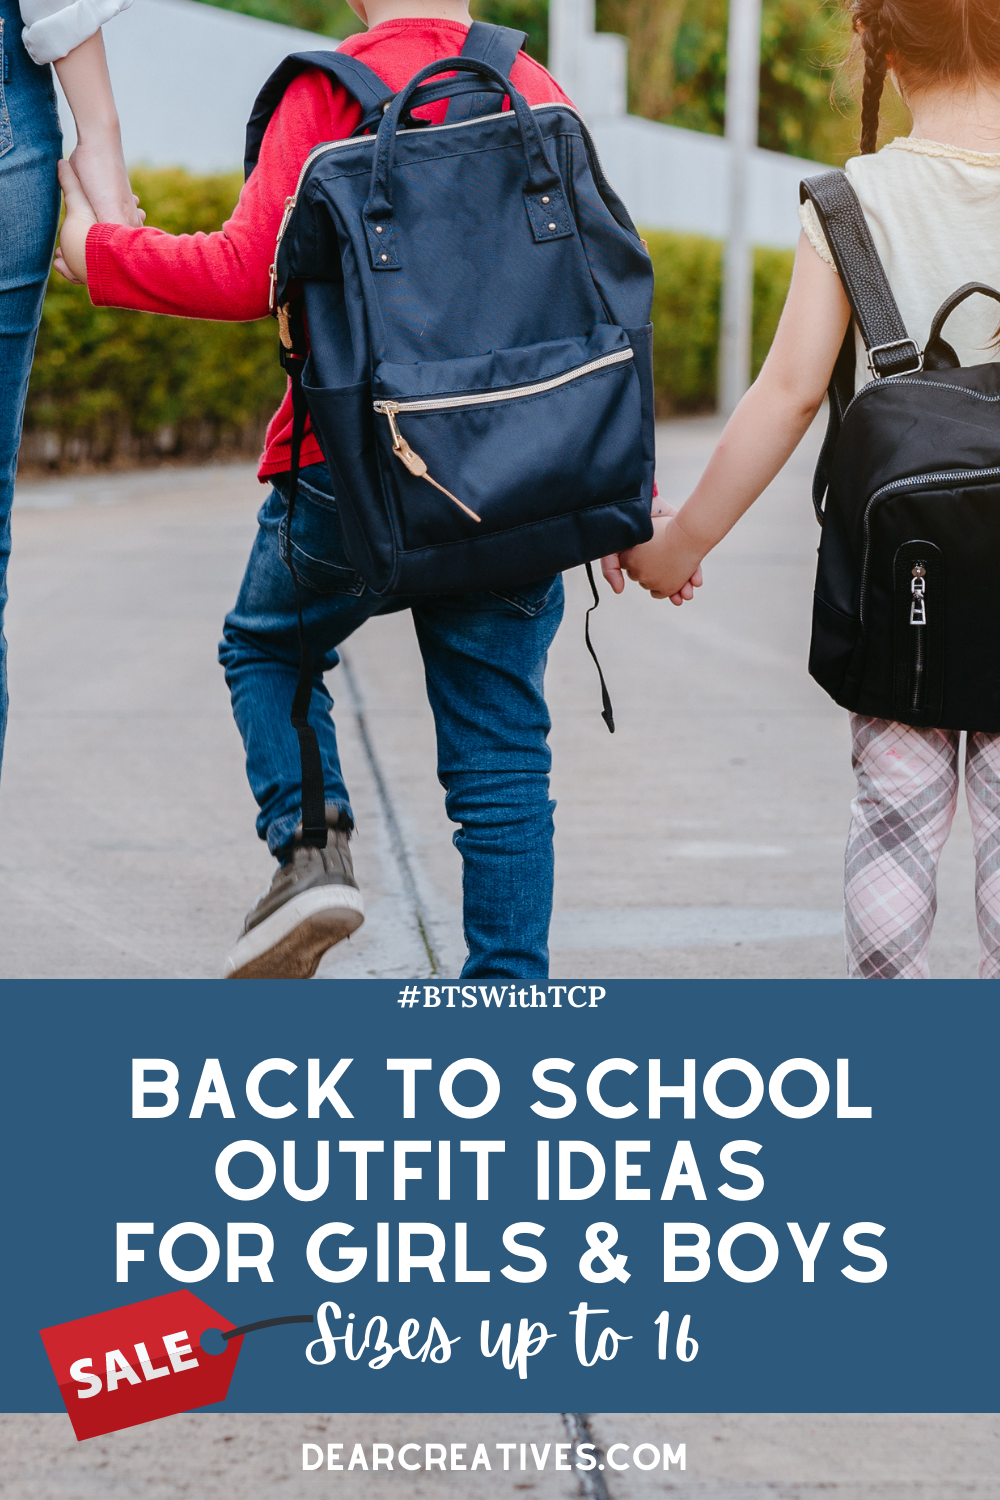 Back To School Clothes - #BTSWitTCP See where to get the best clothes for kids for back to school! Save up to 60% off select items and 40% off backpacks...DearCreatives.com #ad